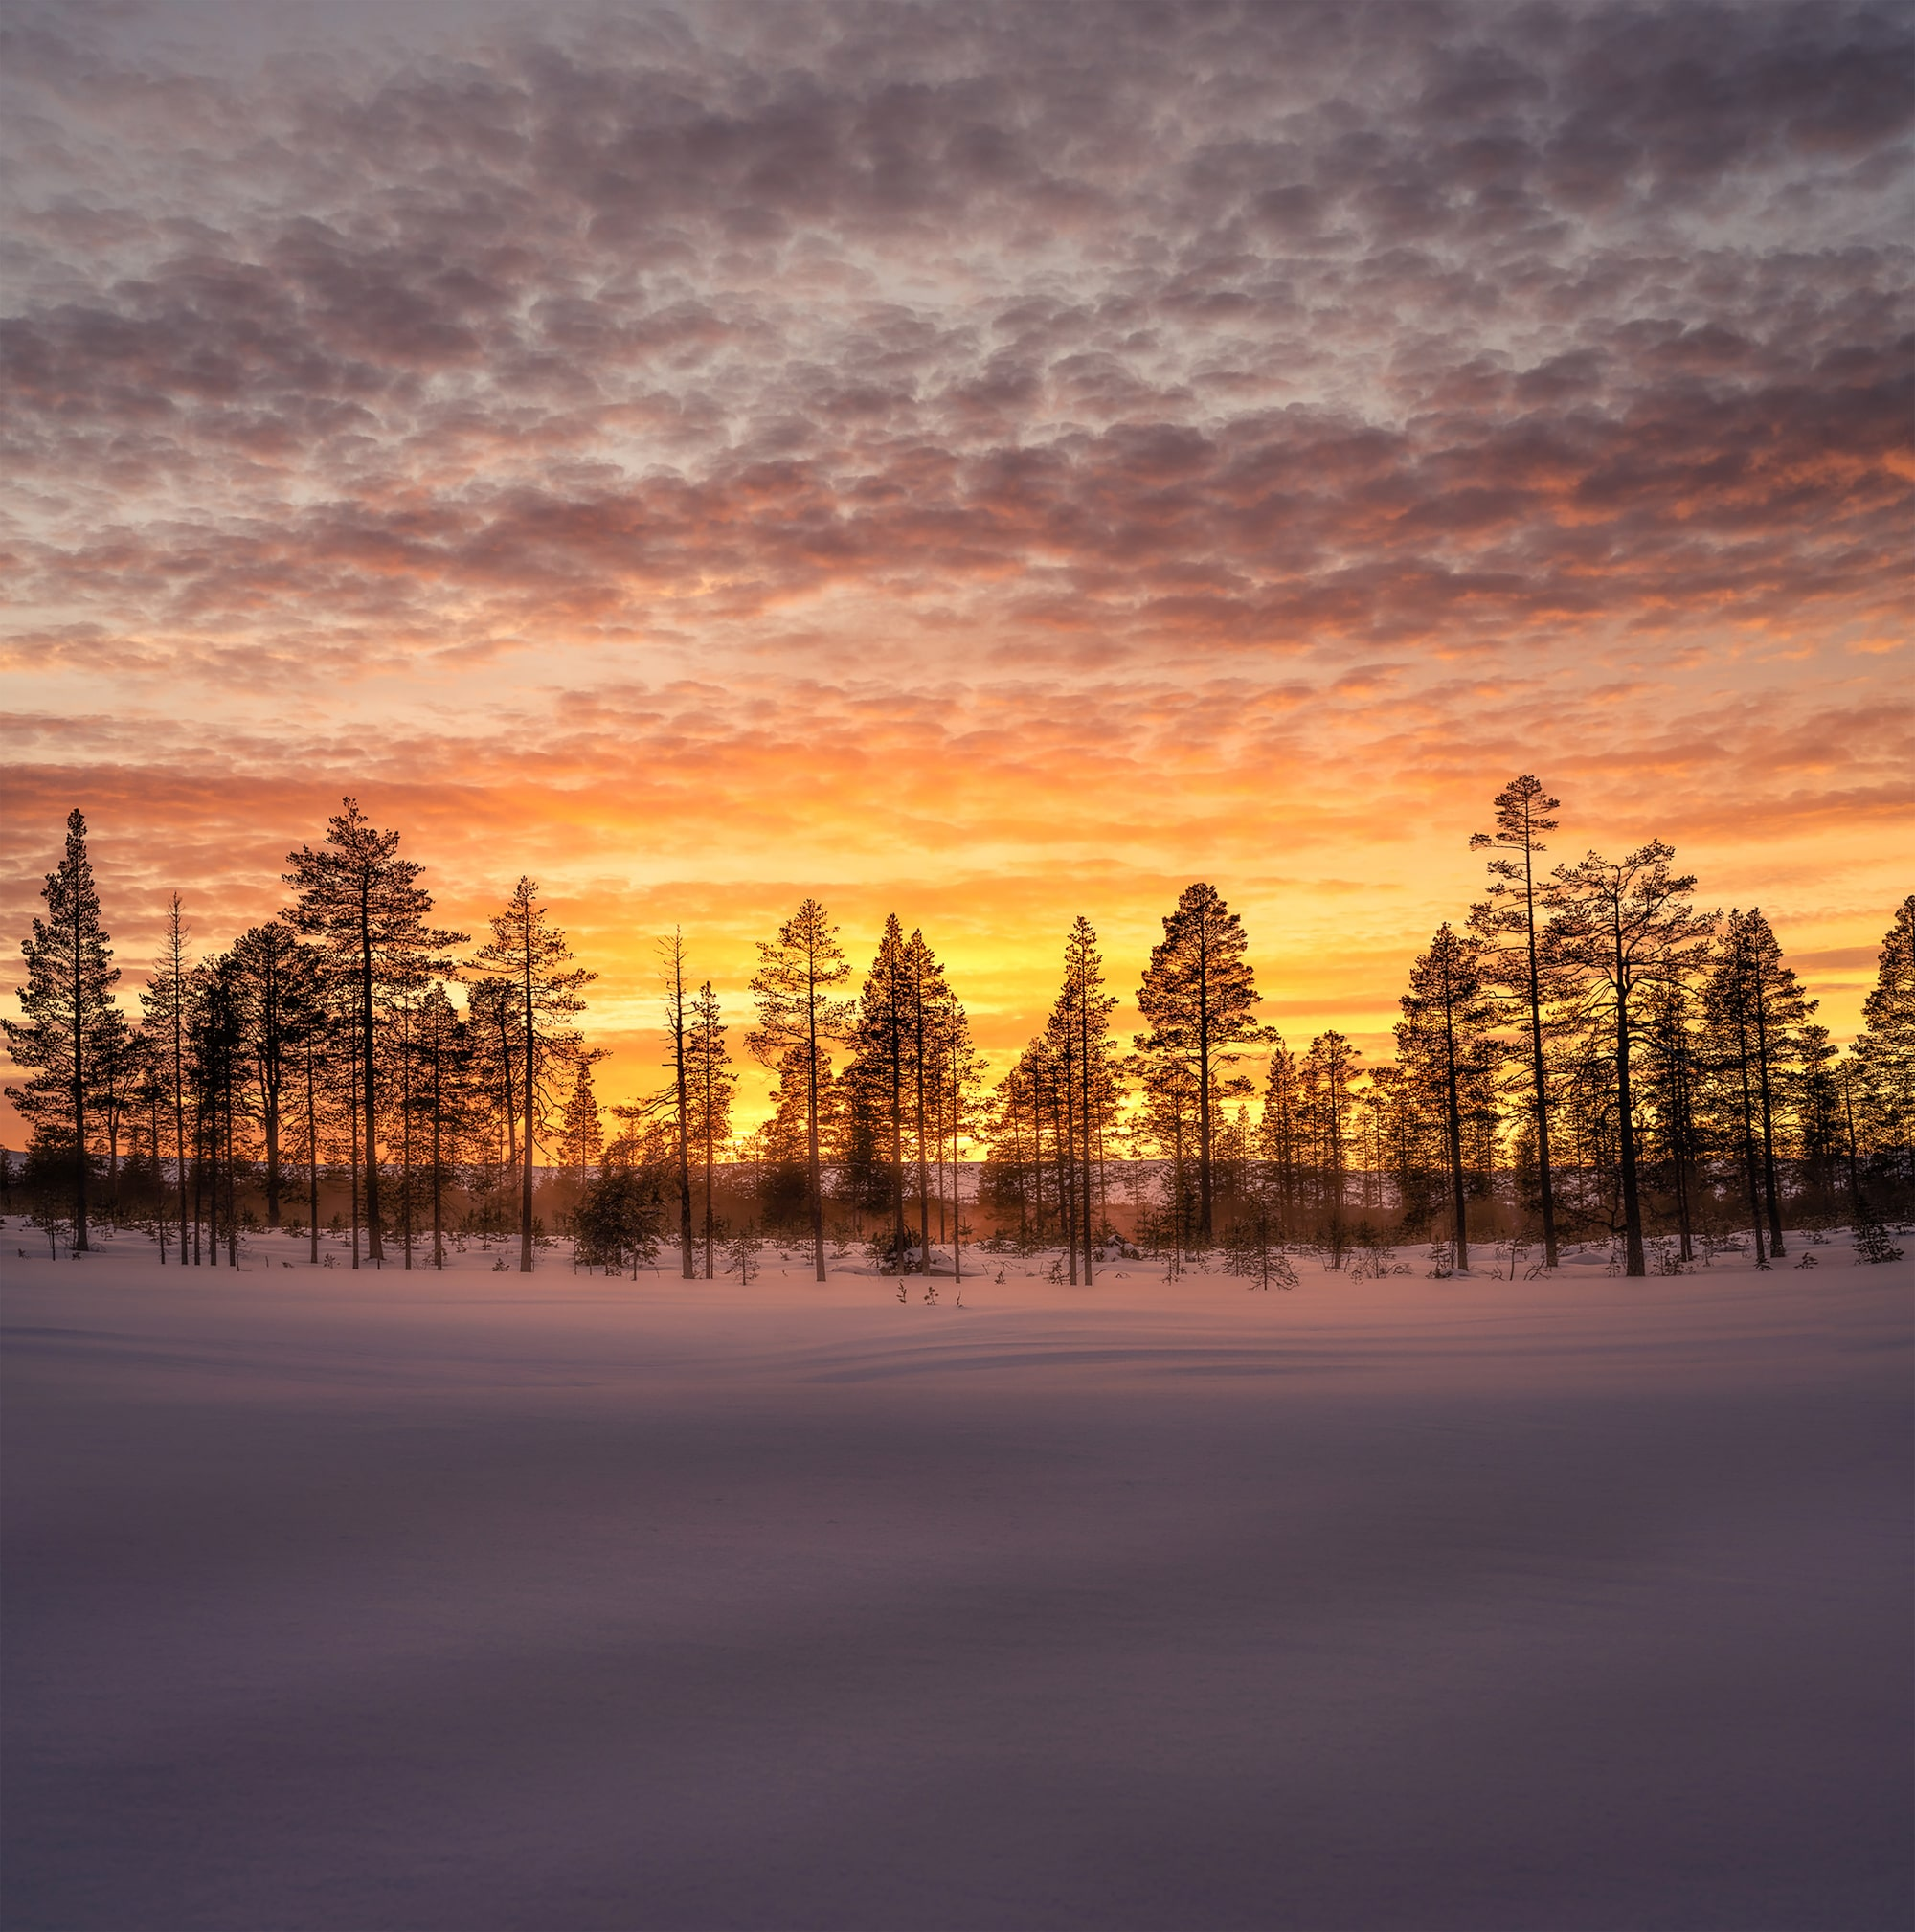 michael schaake sony alpha 7RM4 a row of conifer trees on a snowy landscape at sunset